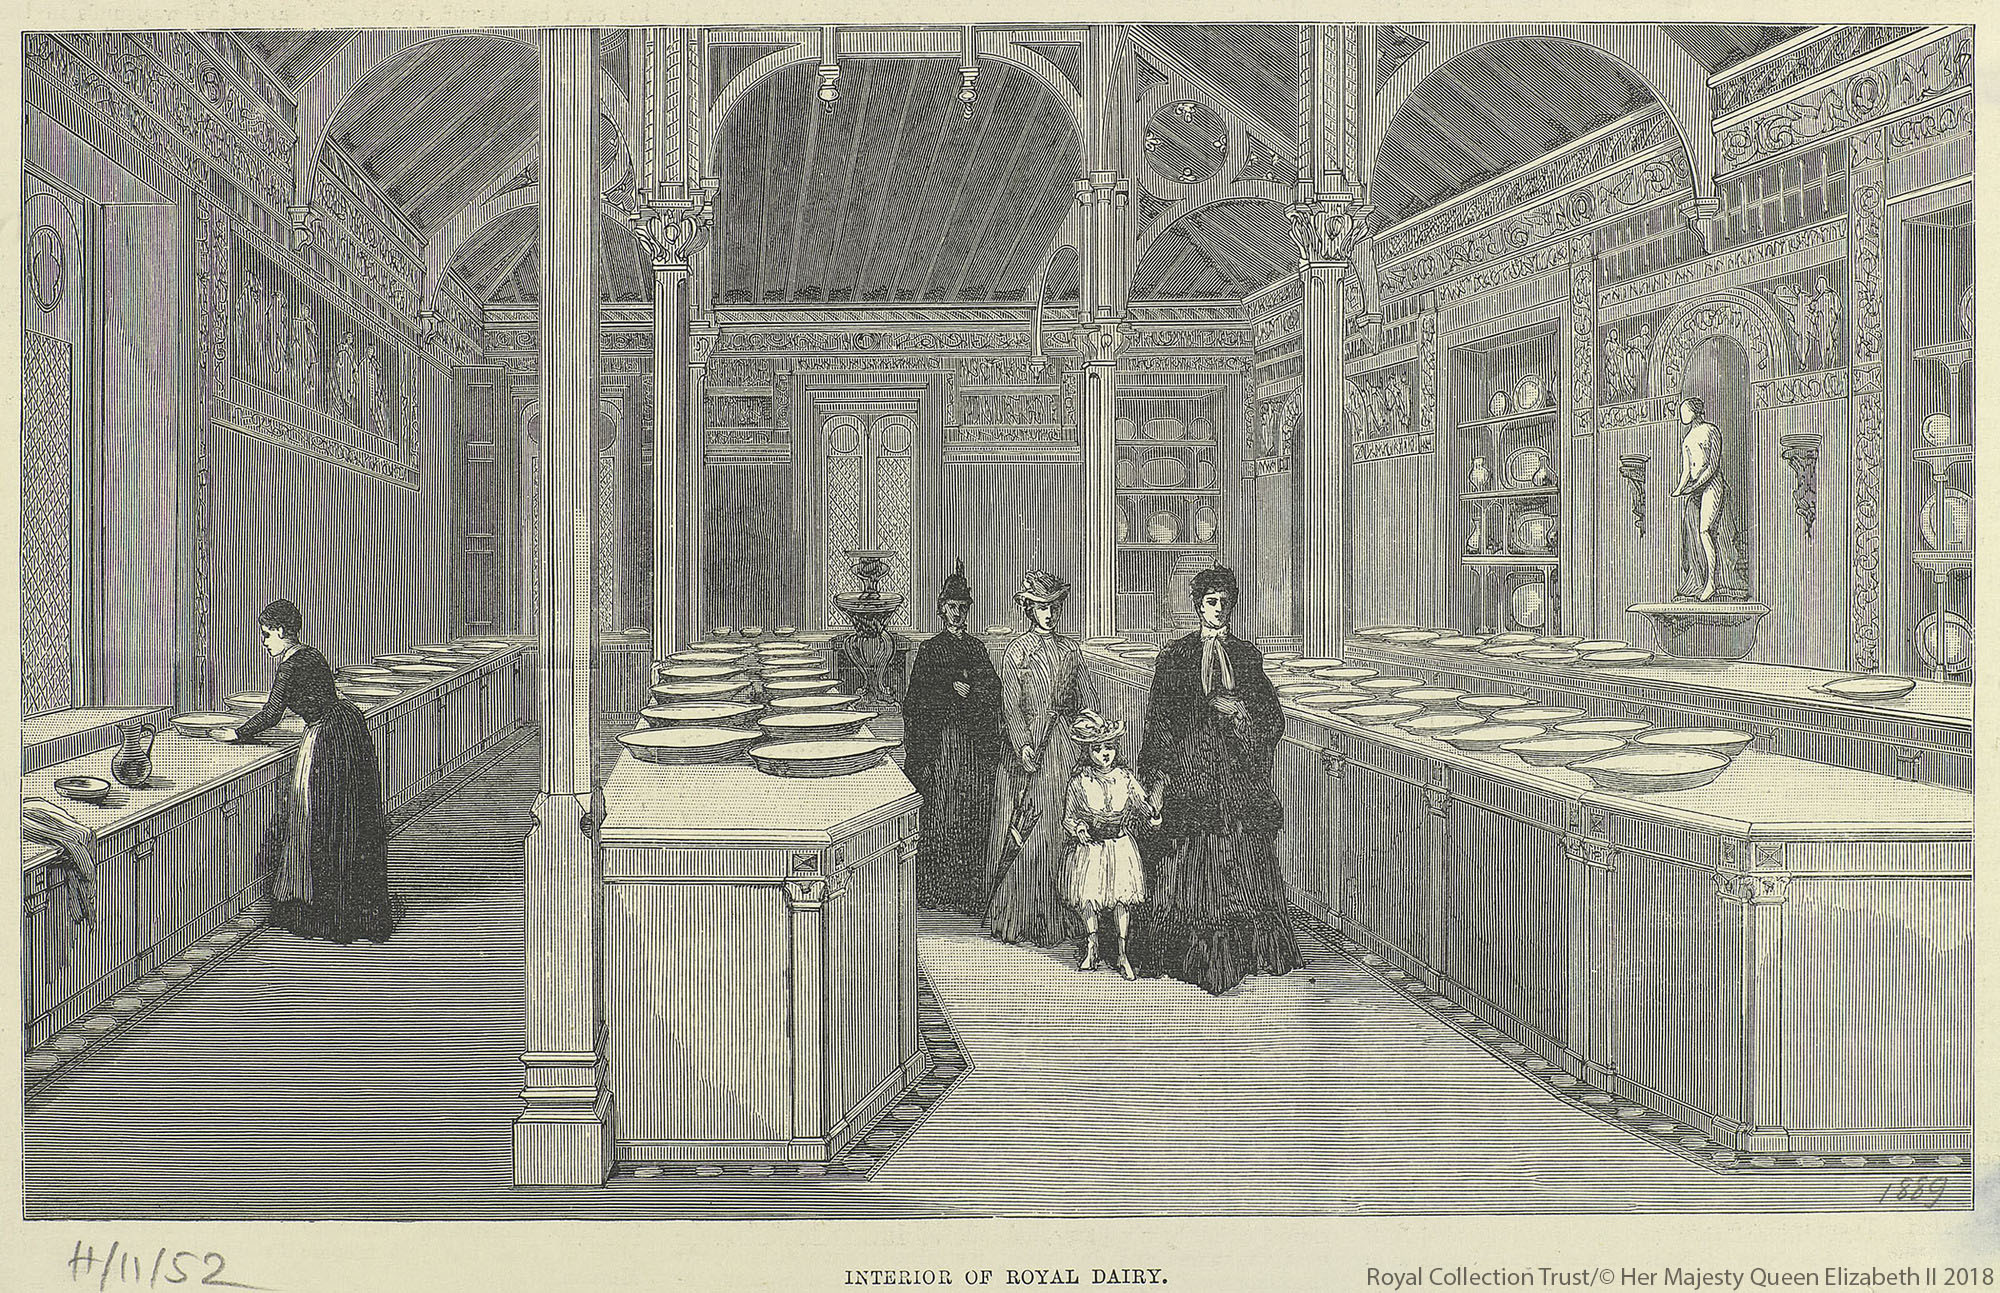 The interior of the Royal Dairy